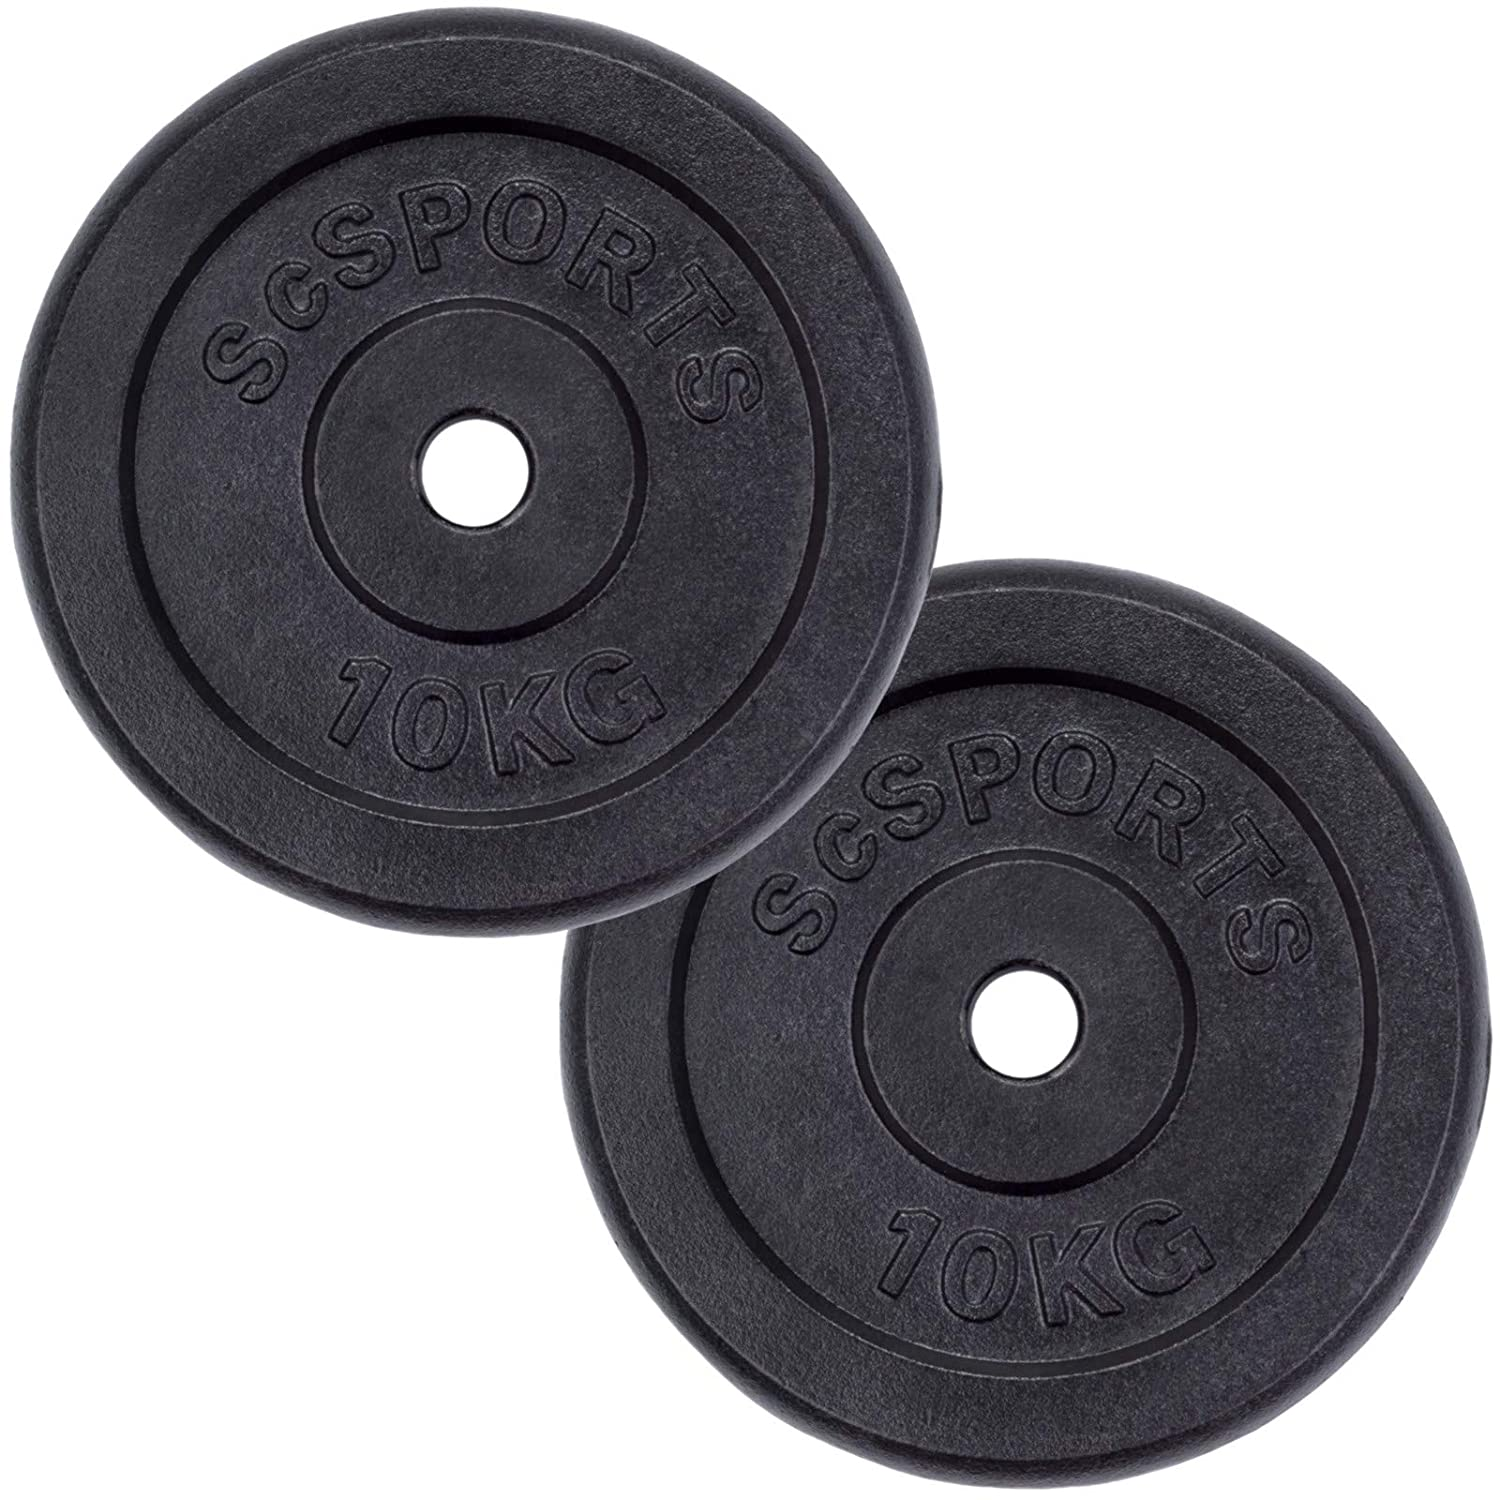 2 x 10 Kg SC Sports Barbell Disc Plate Weight